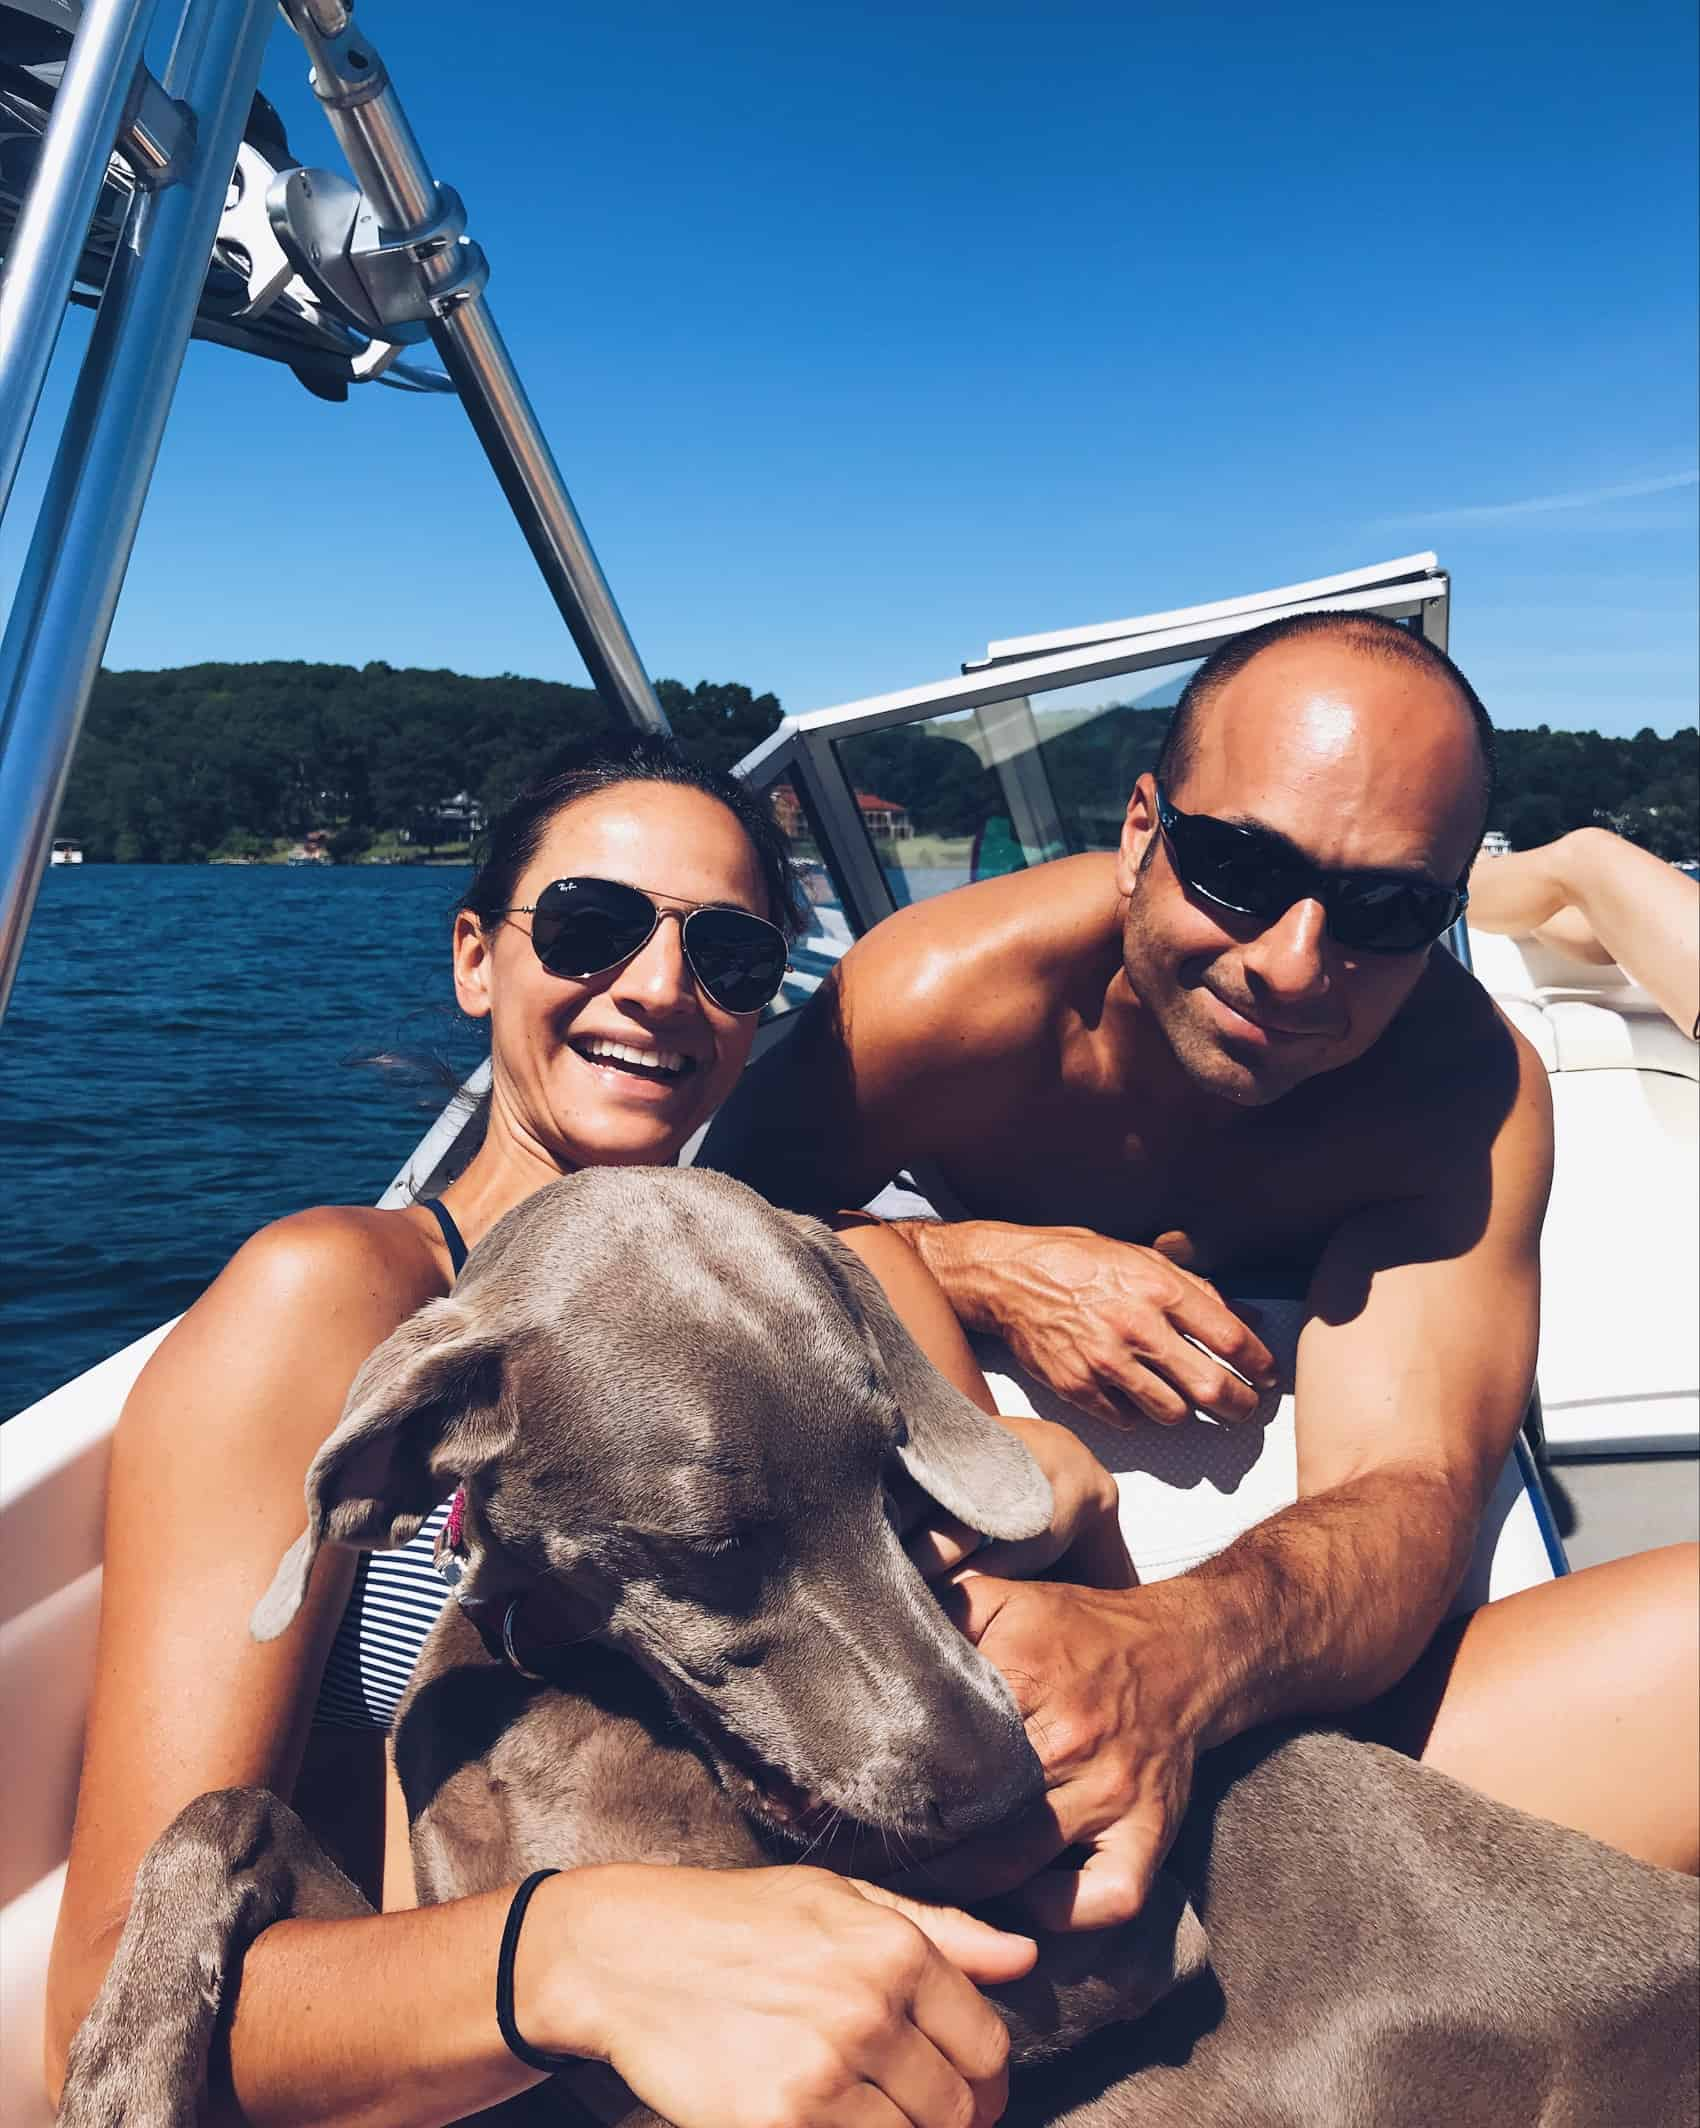 Weimaraner on a boat in Lake Mahopac, NY